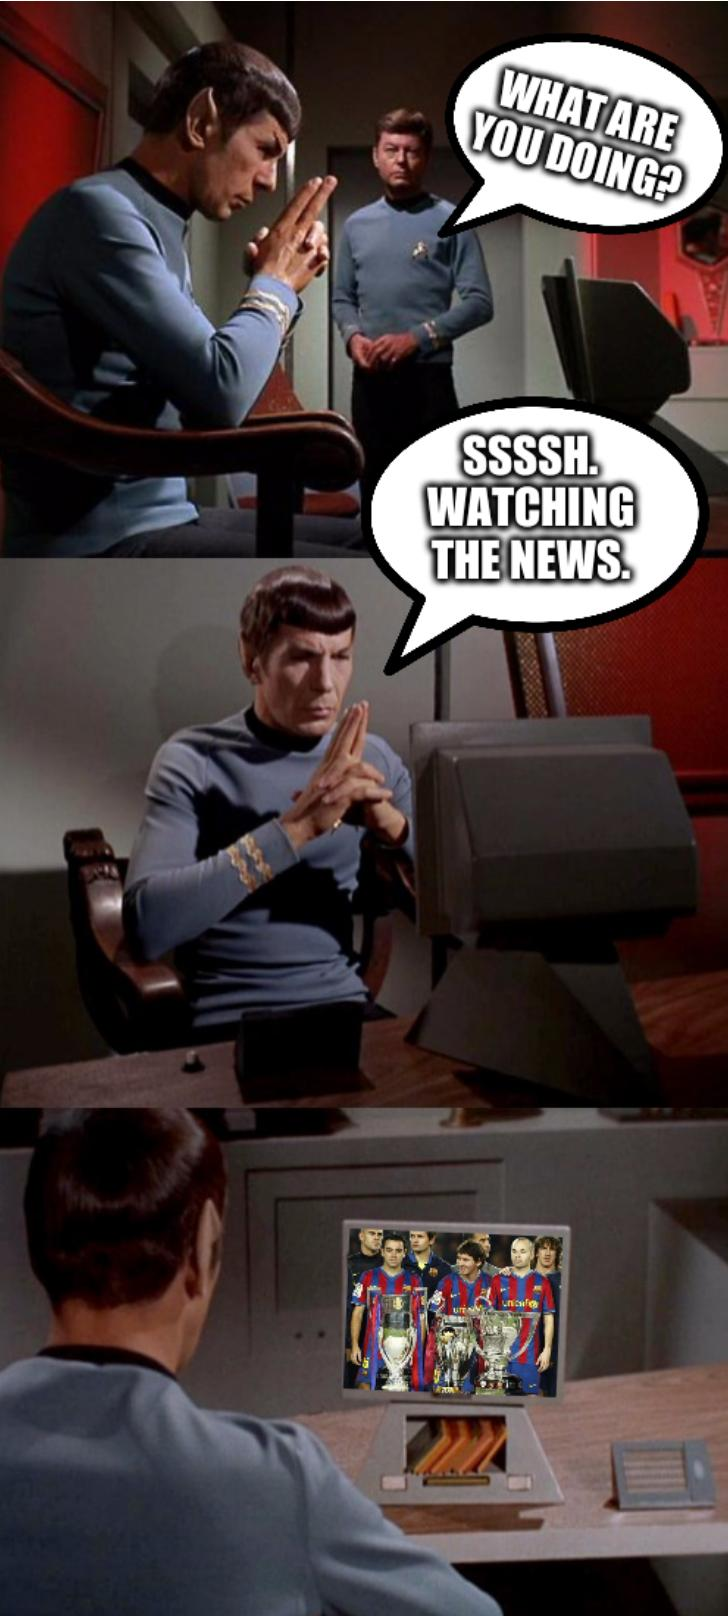 Spock Watching TV: What are you doing? Ssssh. Watching the news.